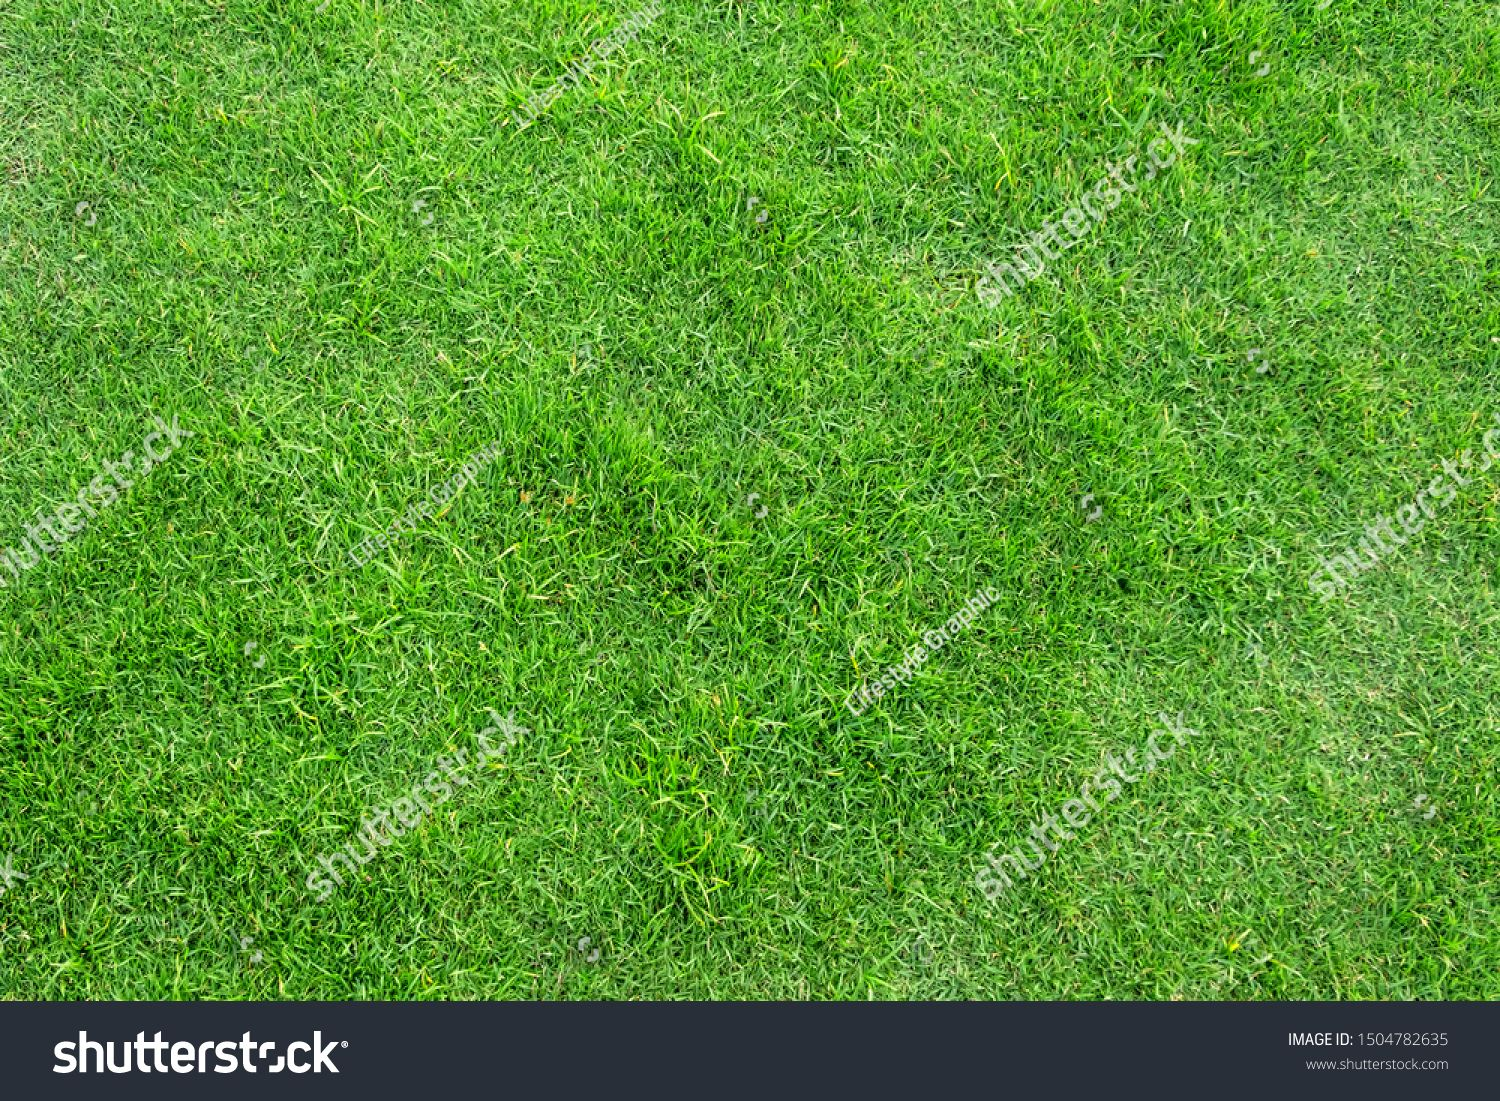 Green Grass Texture For Background Green Lawn Pattern And Texture